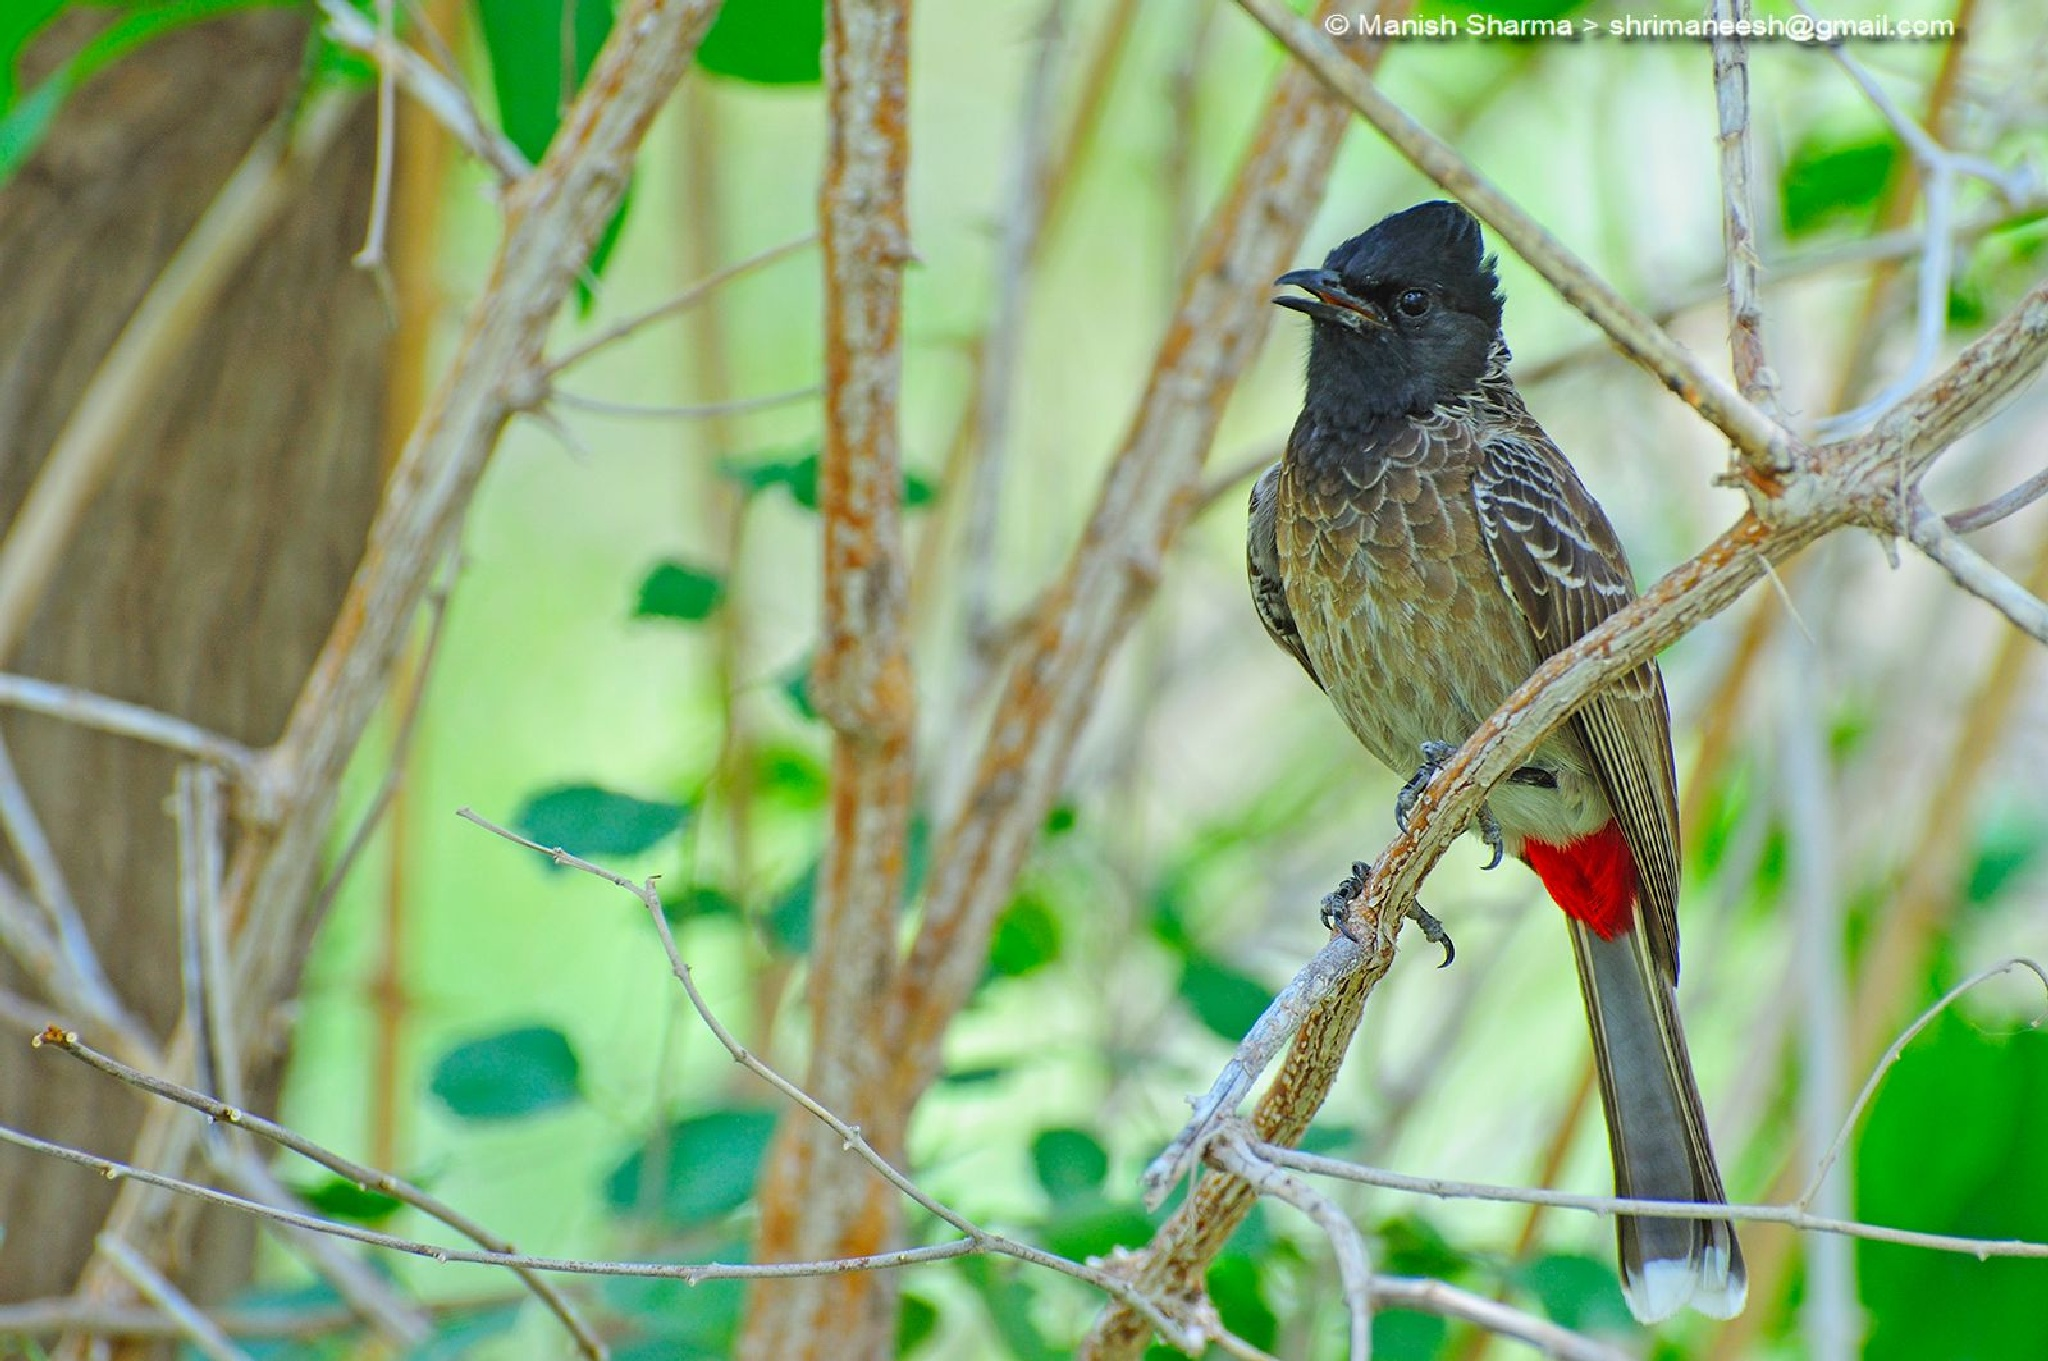 Red Vented Bulbul...Scientific name: Pycnonotus cafer by Maneesh Sharma